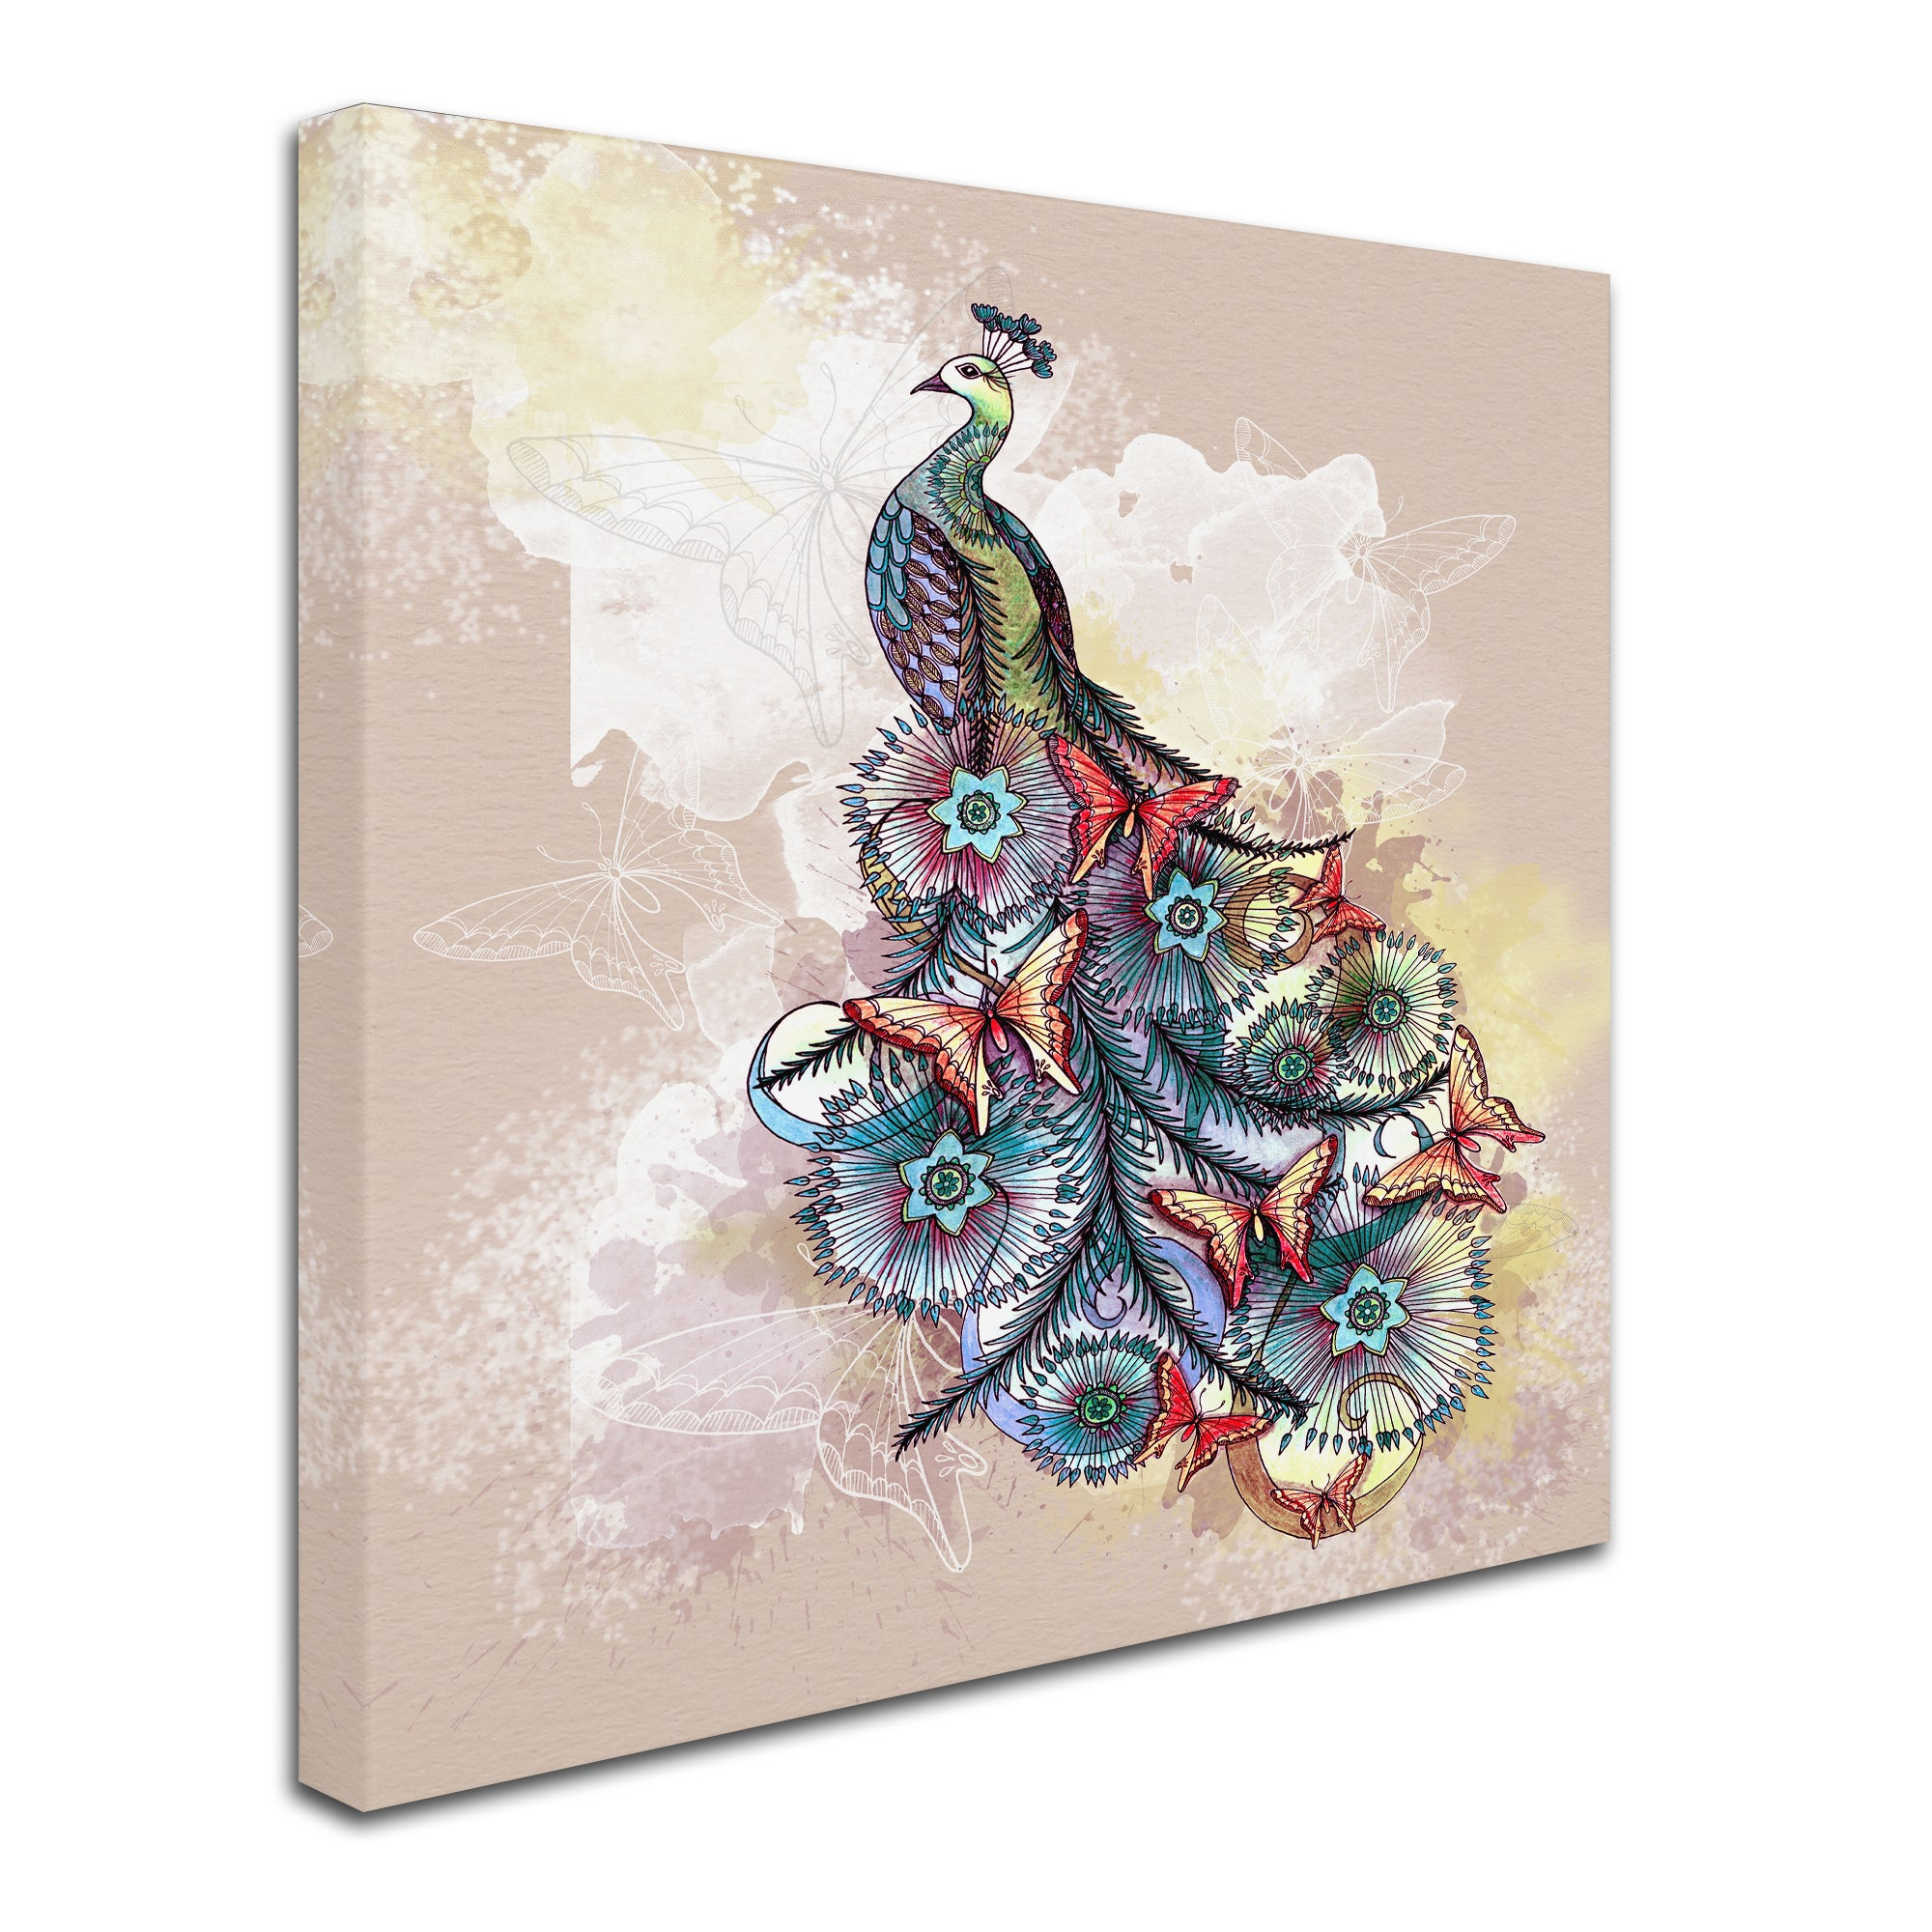 The Tangled Peacock Butterfly Peacock Canvas Art Overstock 16600244